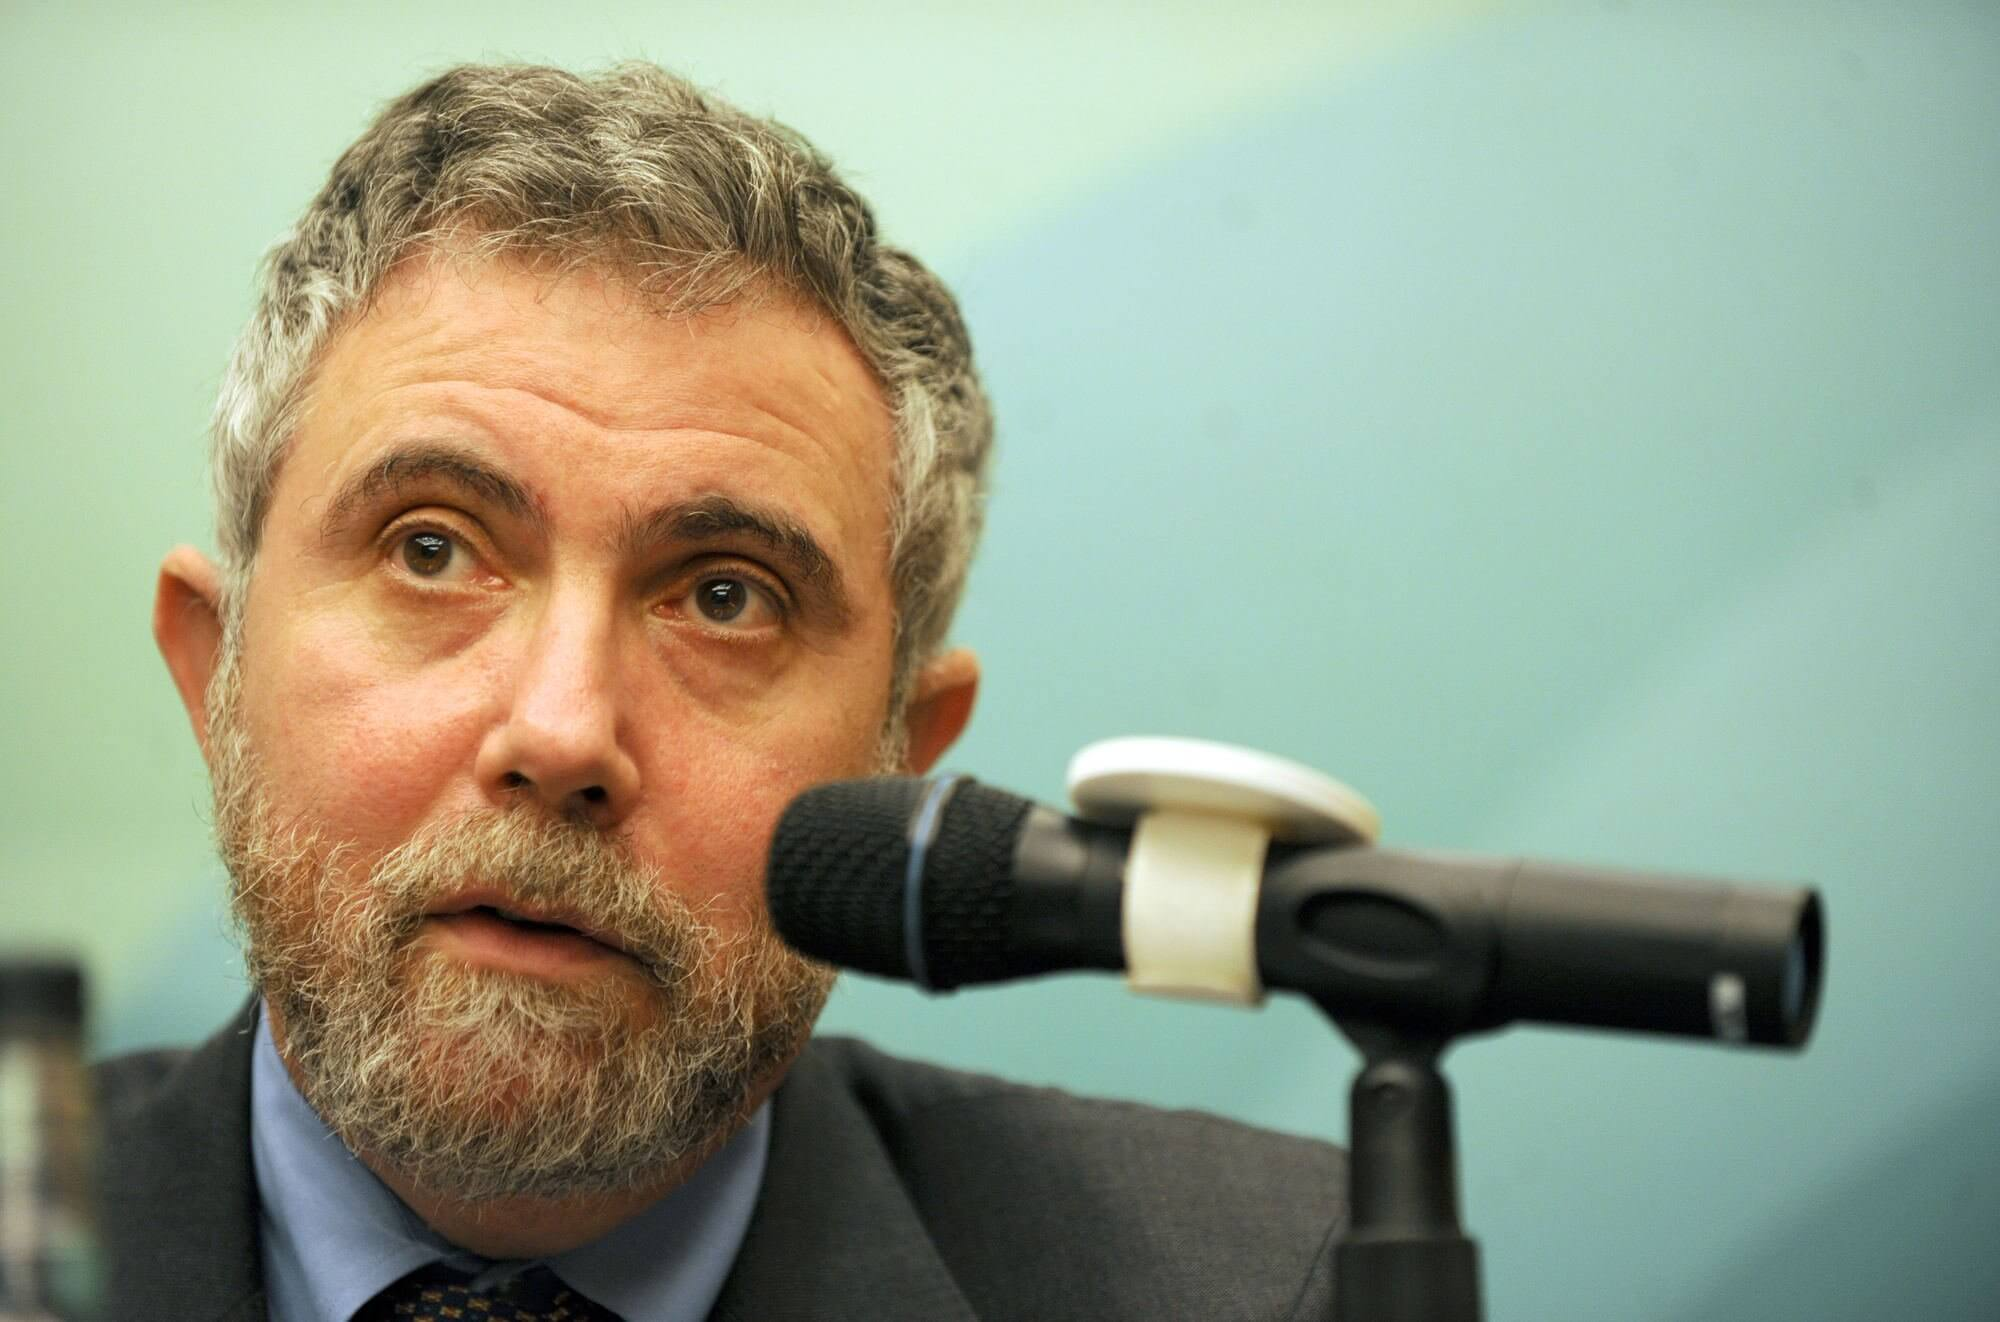 Paul Krugman Expects a Recession this Year and Warns of Unpreparedness